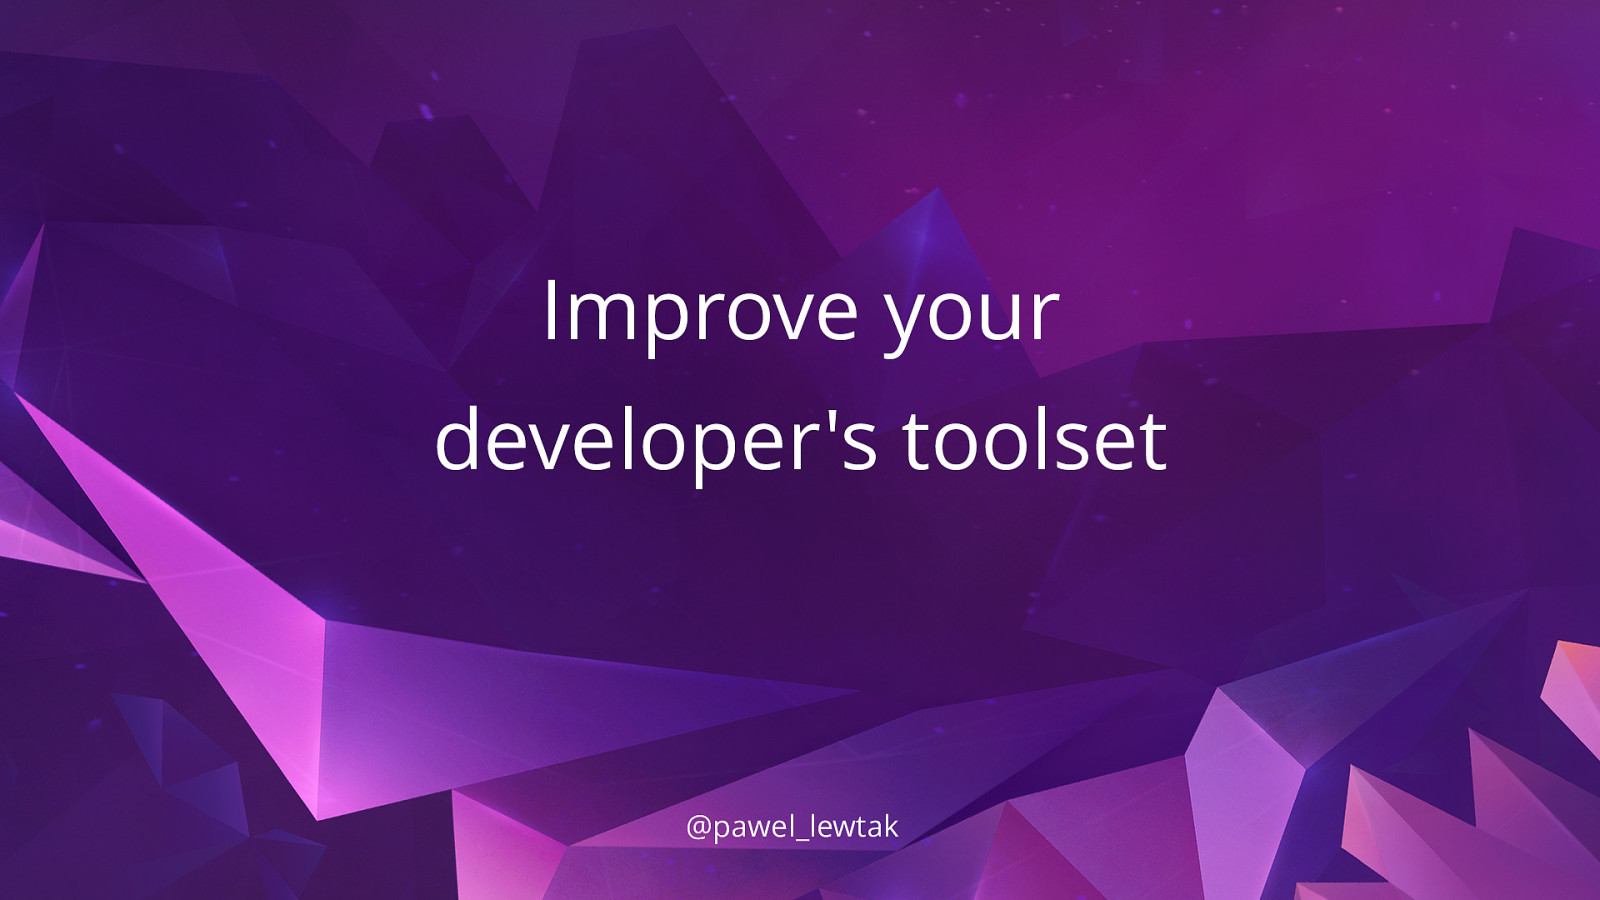 Improve your developer's toolset